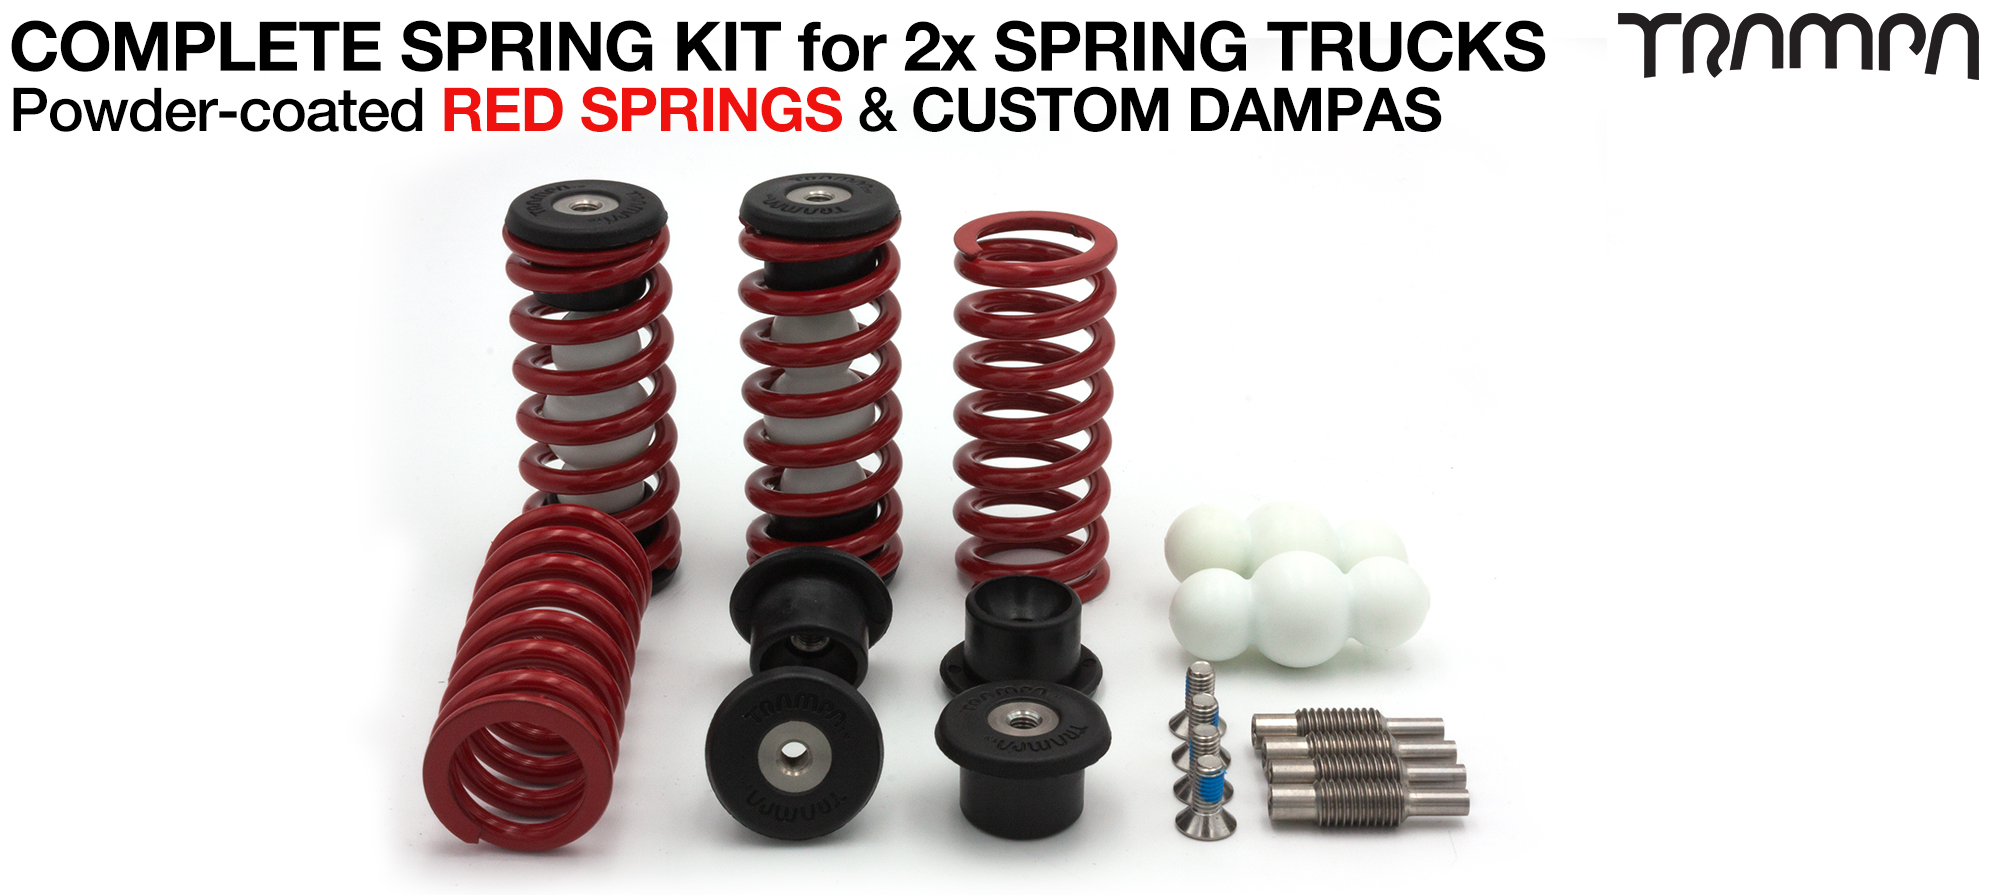 Powder Coated RED Springs